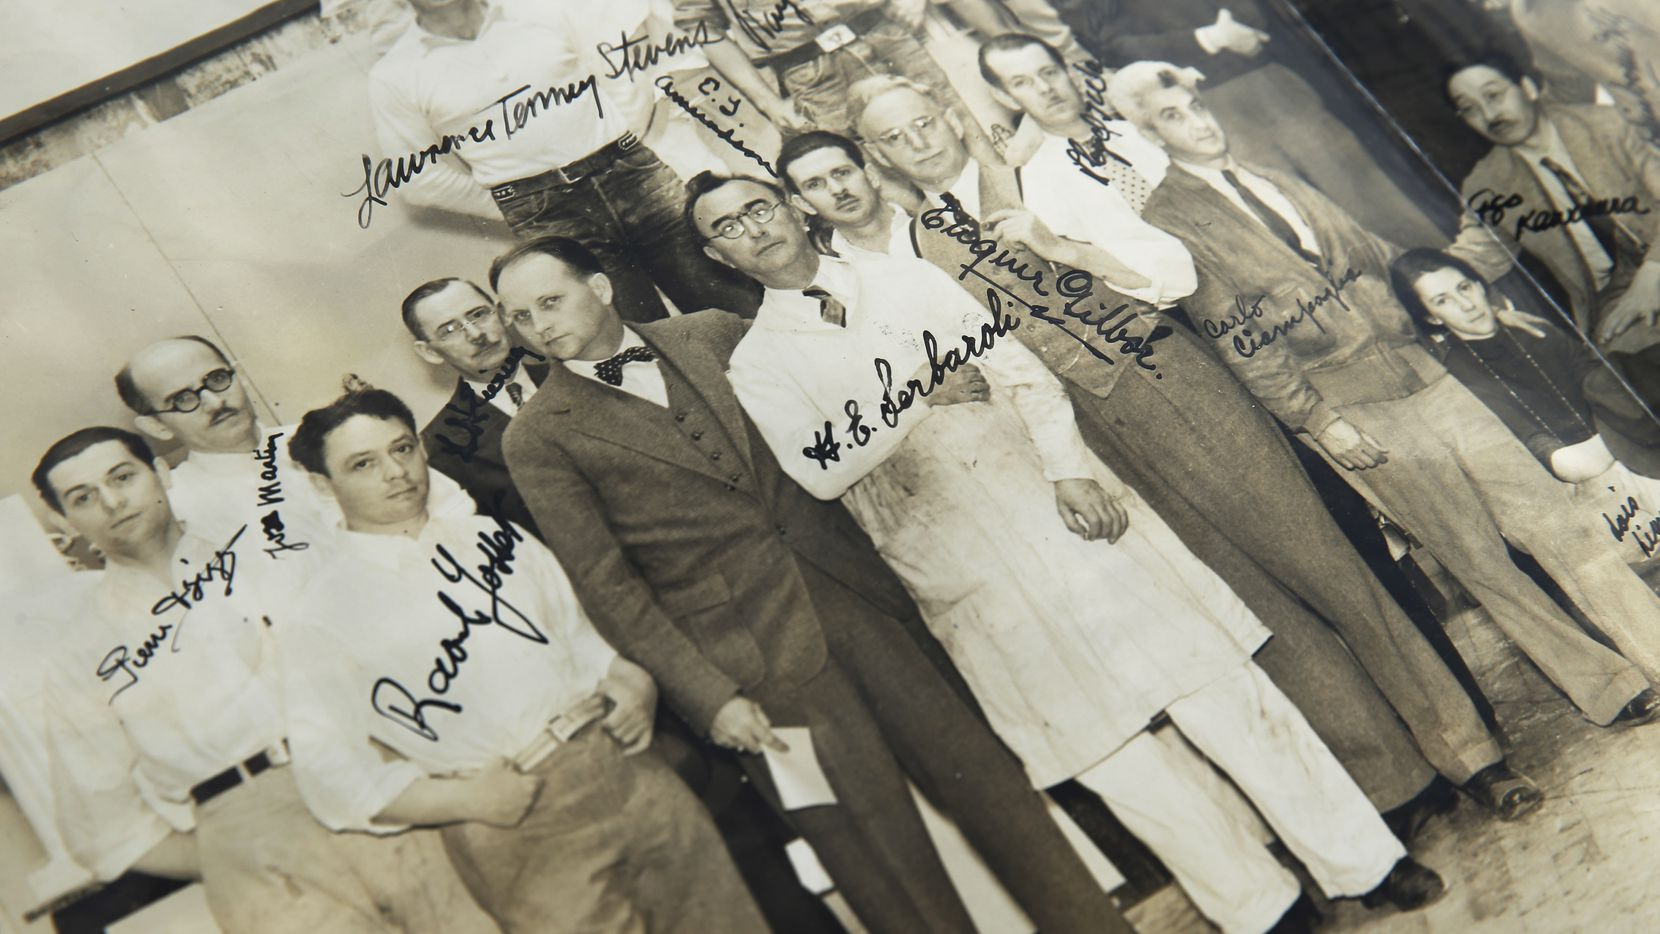 George L. Dahl (center in bowtie) poses with the men and women who helped design and construction the Fair Park campus for the 1936 Texas Centennial Exposition. This autographed photos is among the important keepsakes Adrienne Faulkner keeps in the Dahl archives.